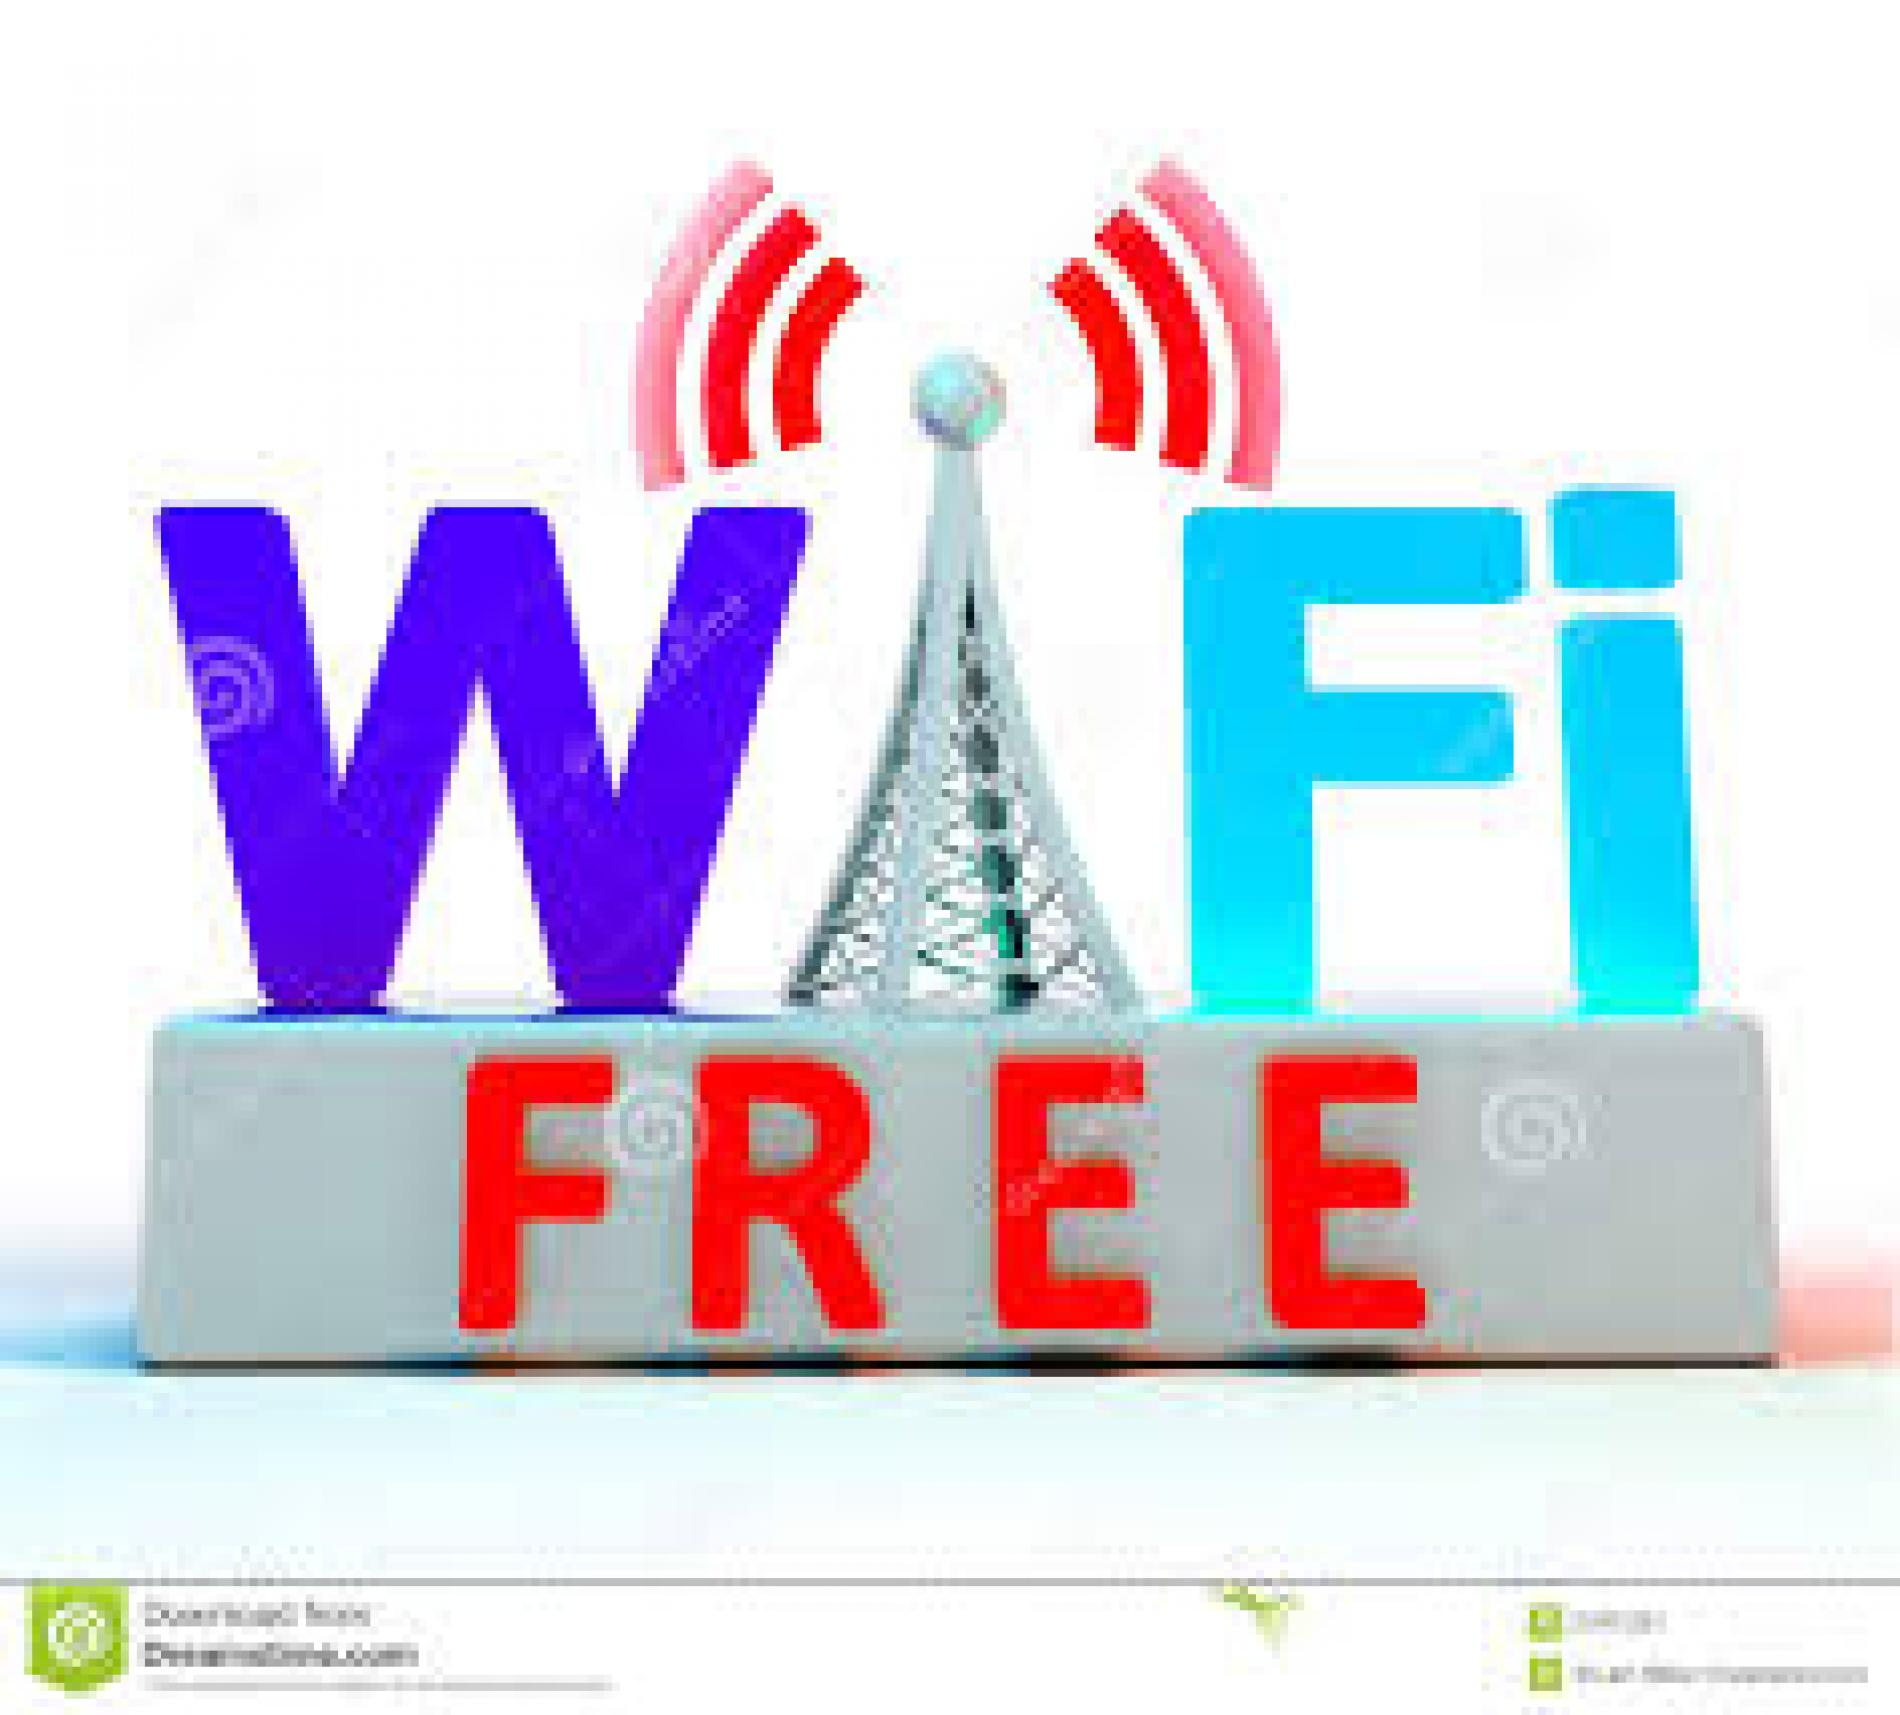 Free WIFI connection